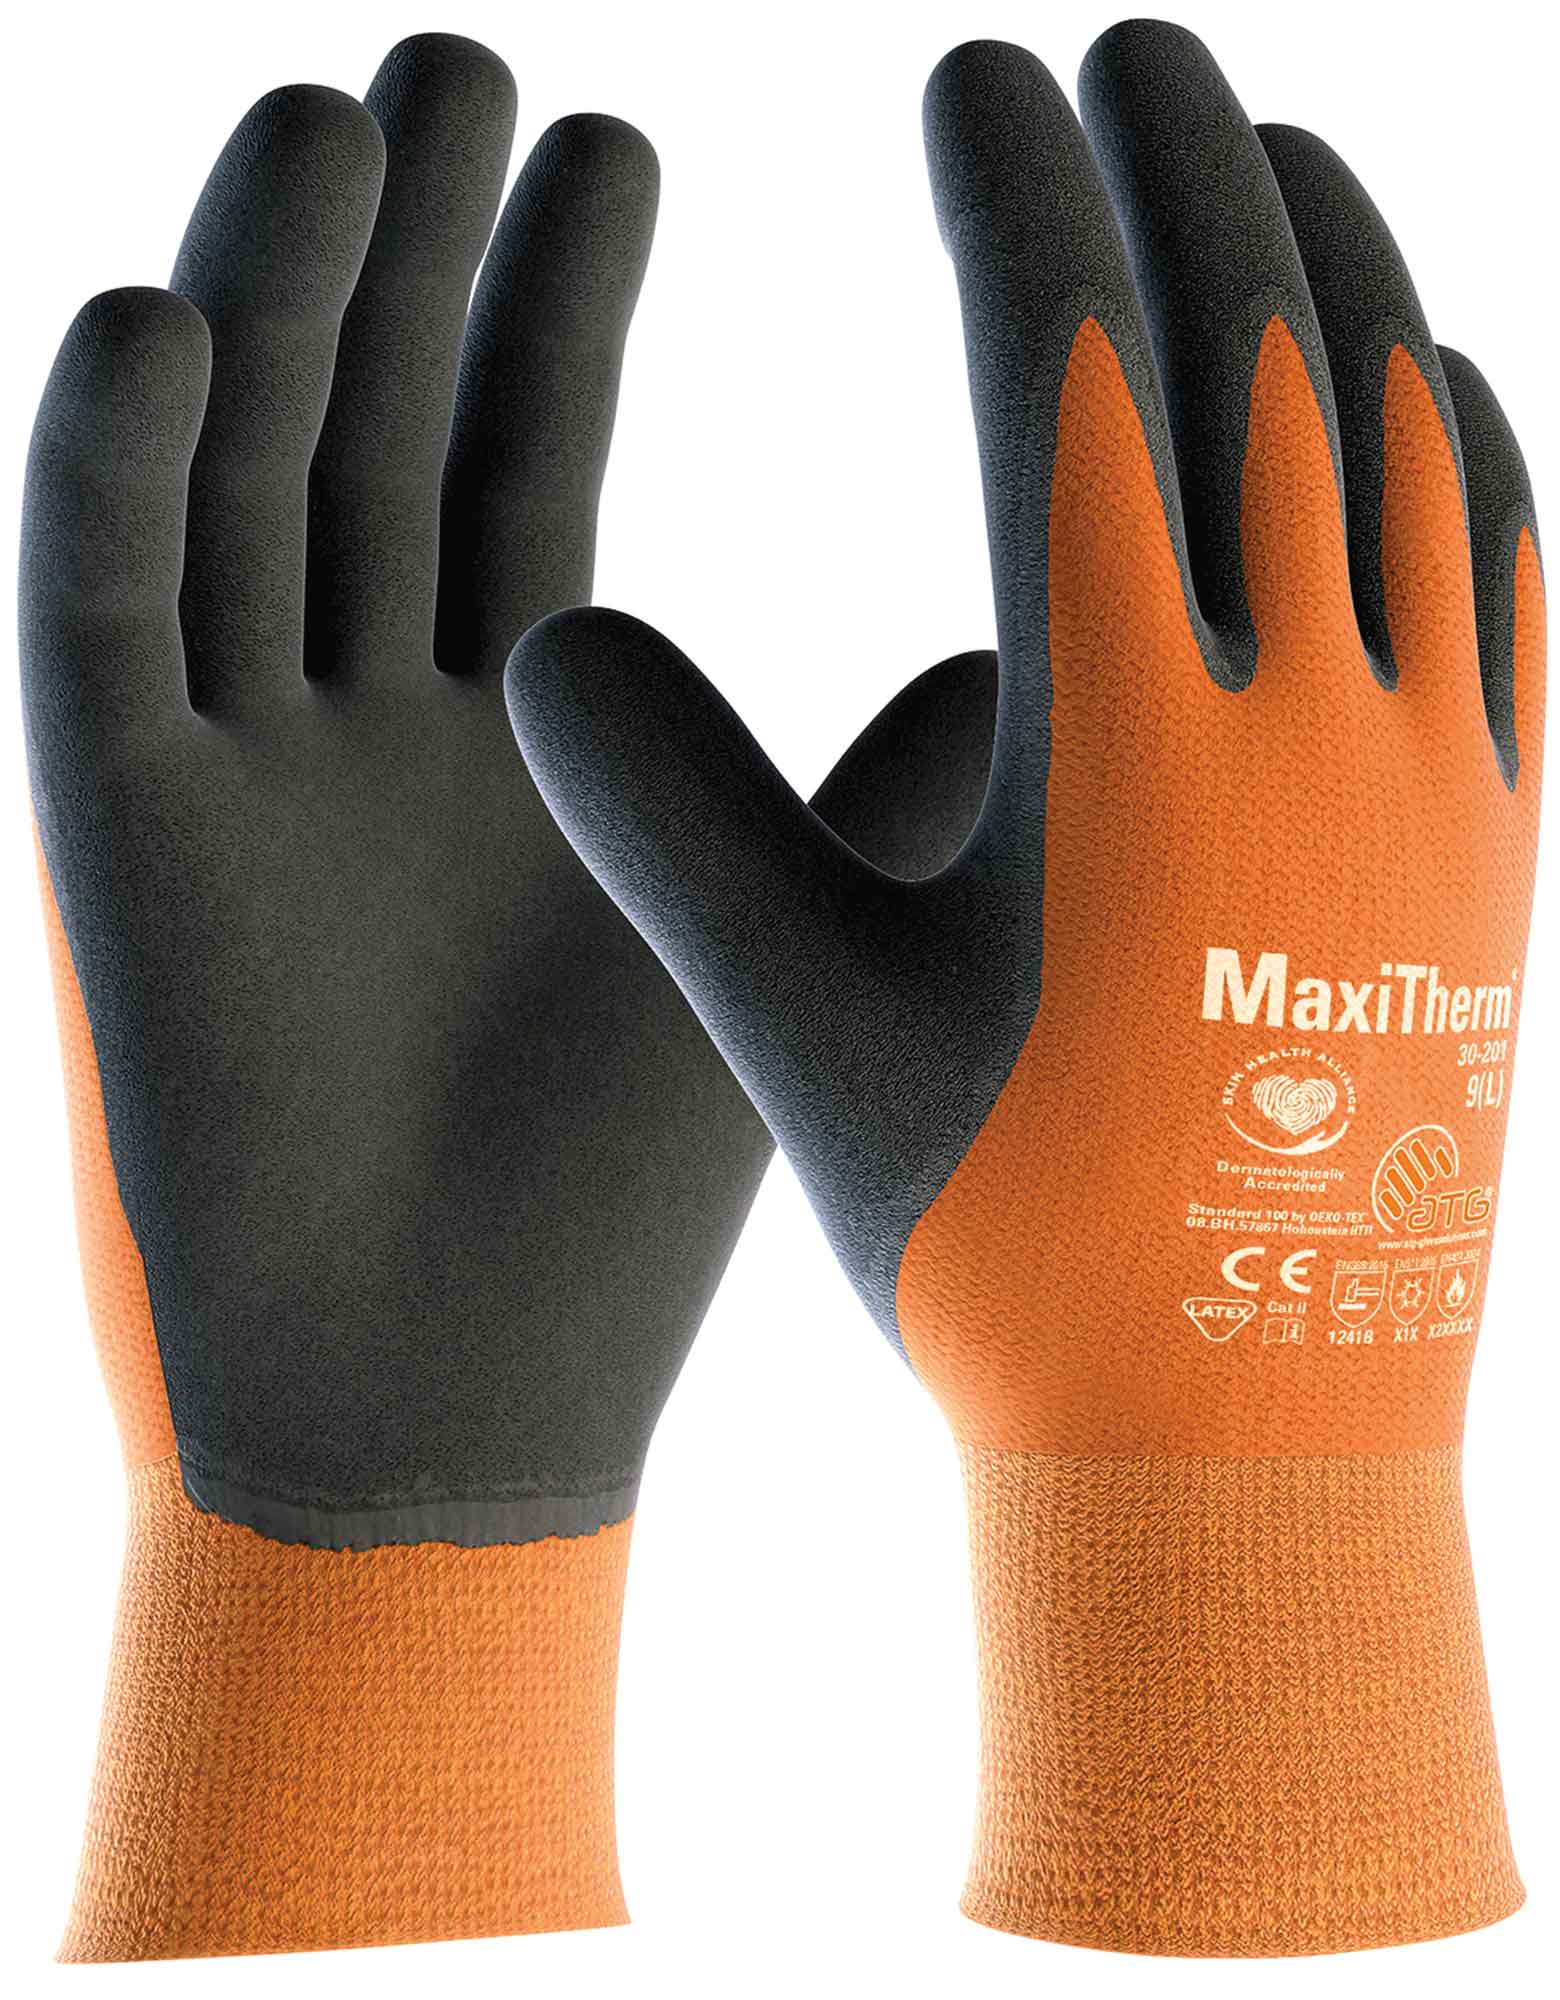 30-201 MaxiTherm® Palm Coated Thermal Lined Glove Image